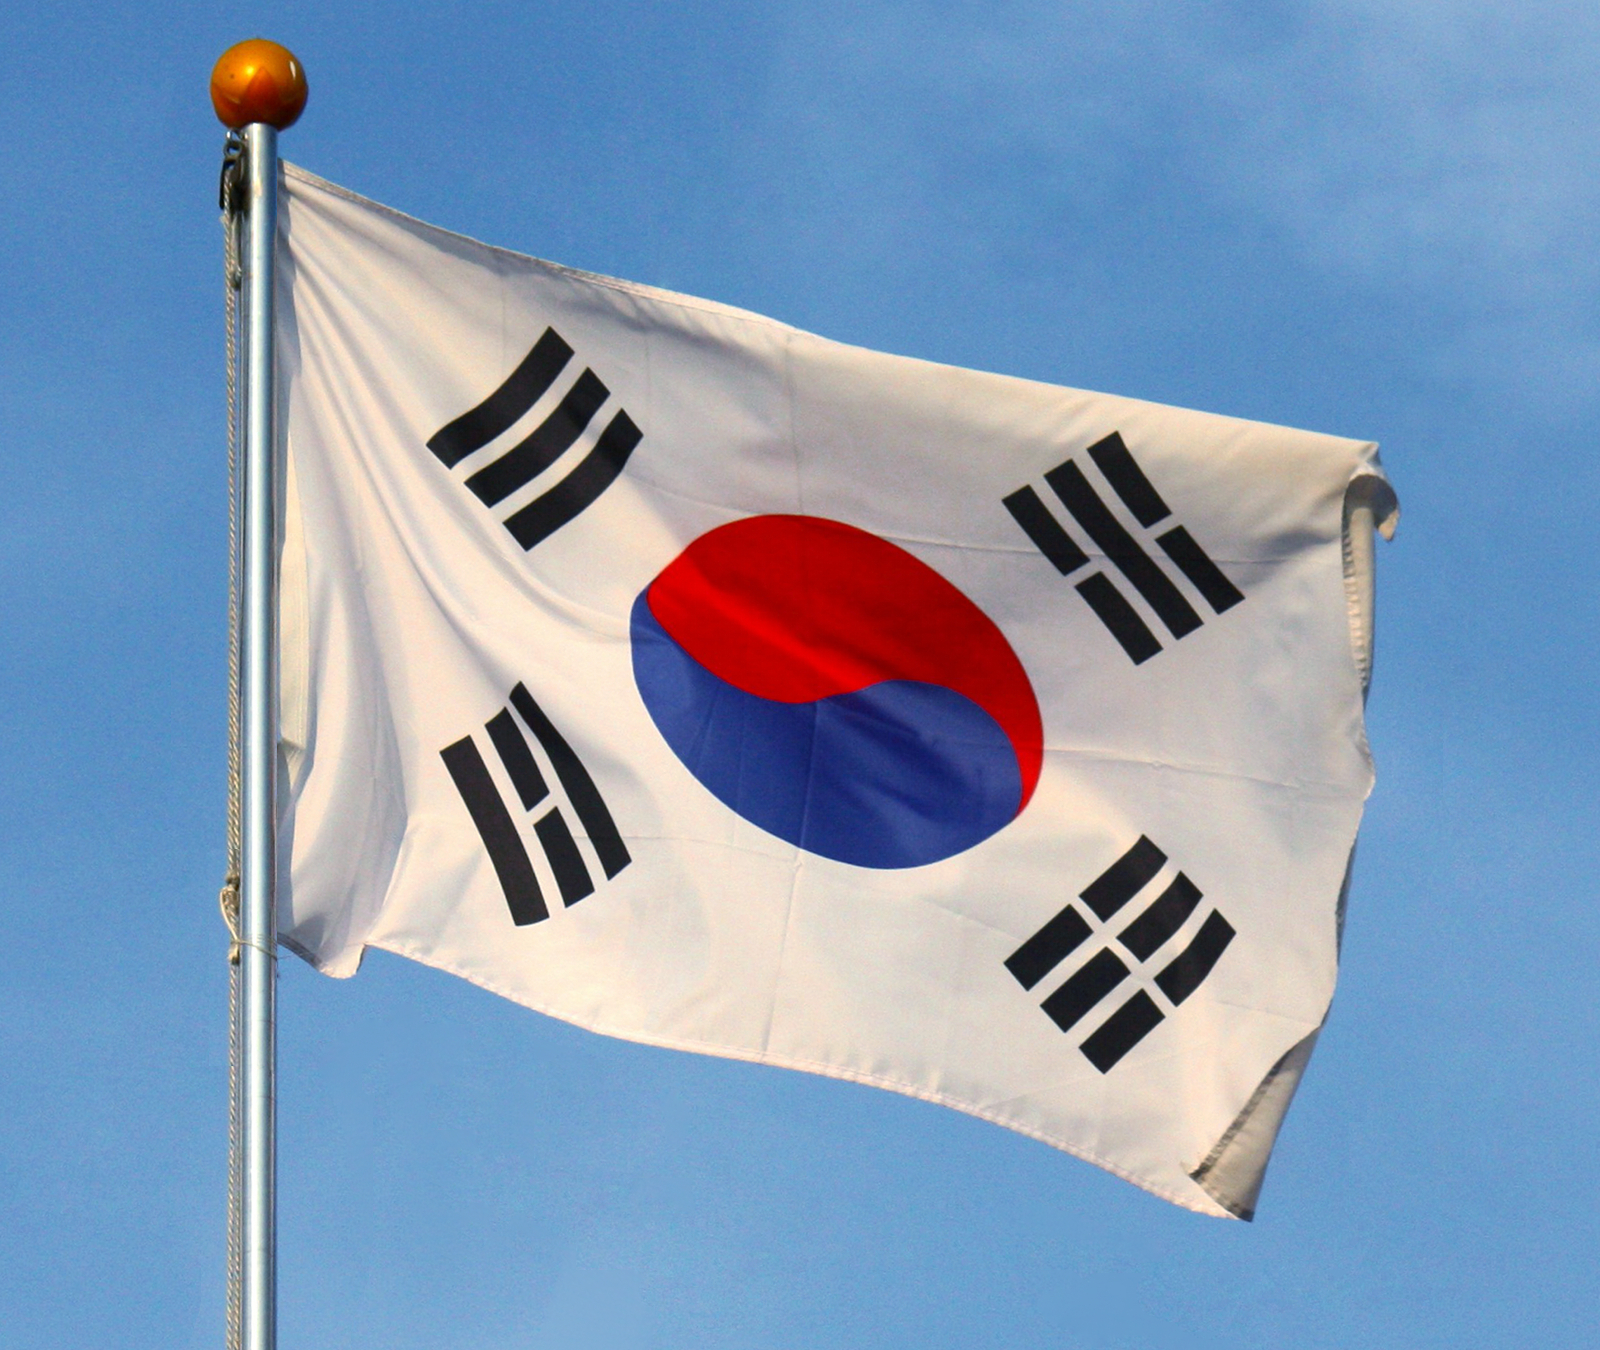 http://upload.wikimedia.org/wikipedia/commons/f/f8/Flag_of_South_Korea_(cropped).jpg